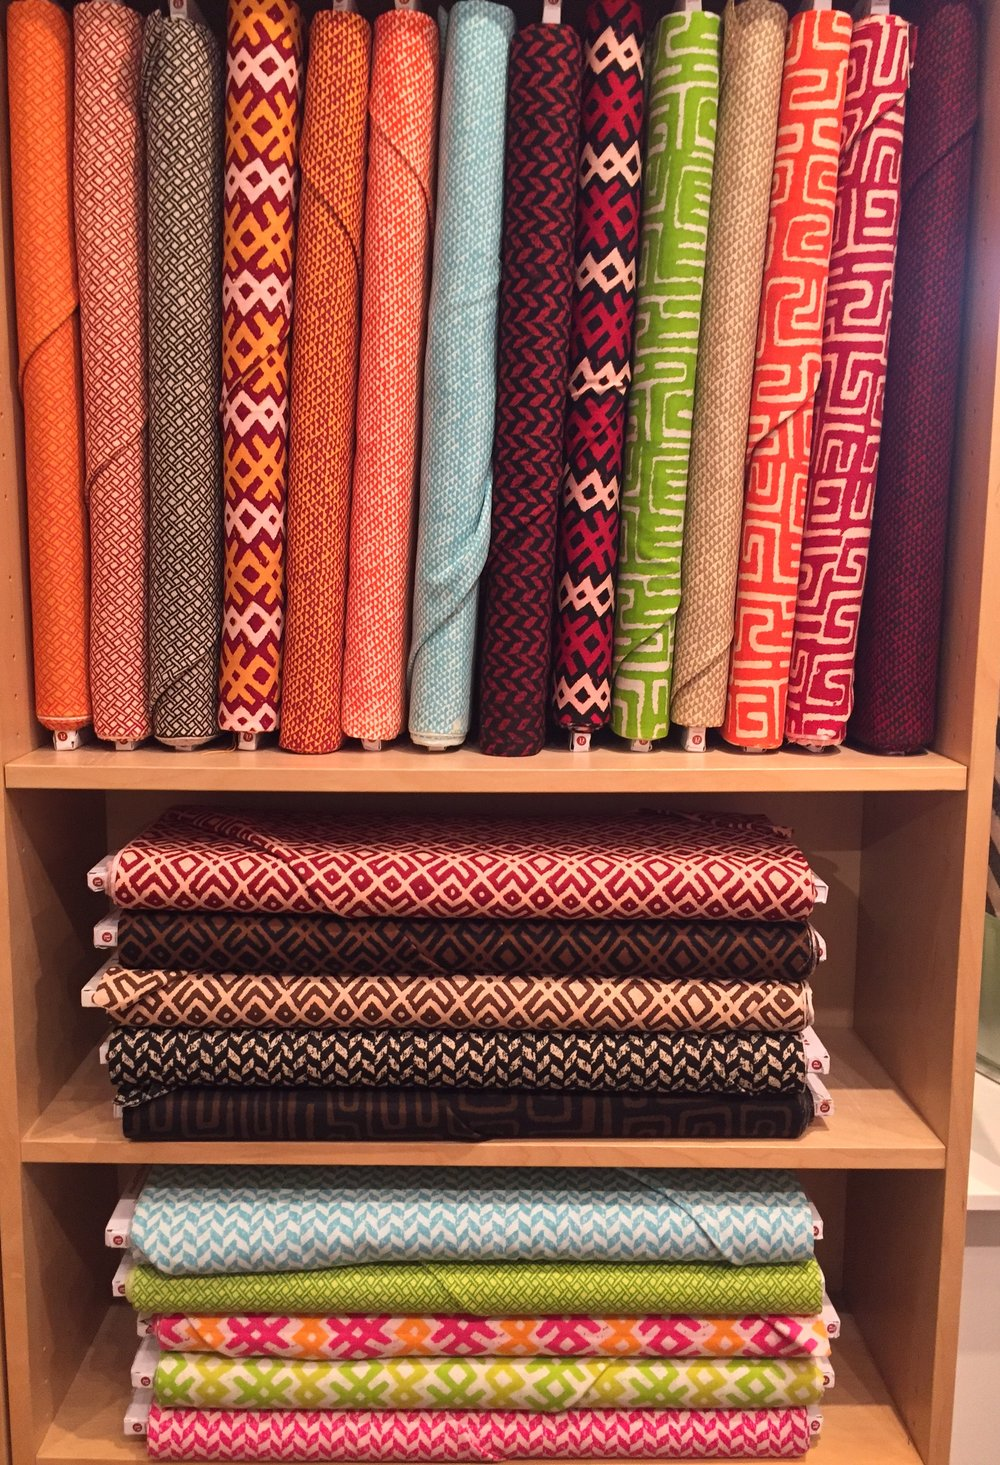 New group of textured cotton from Andover: Story Lines.